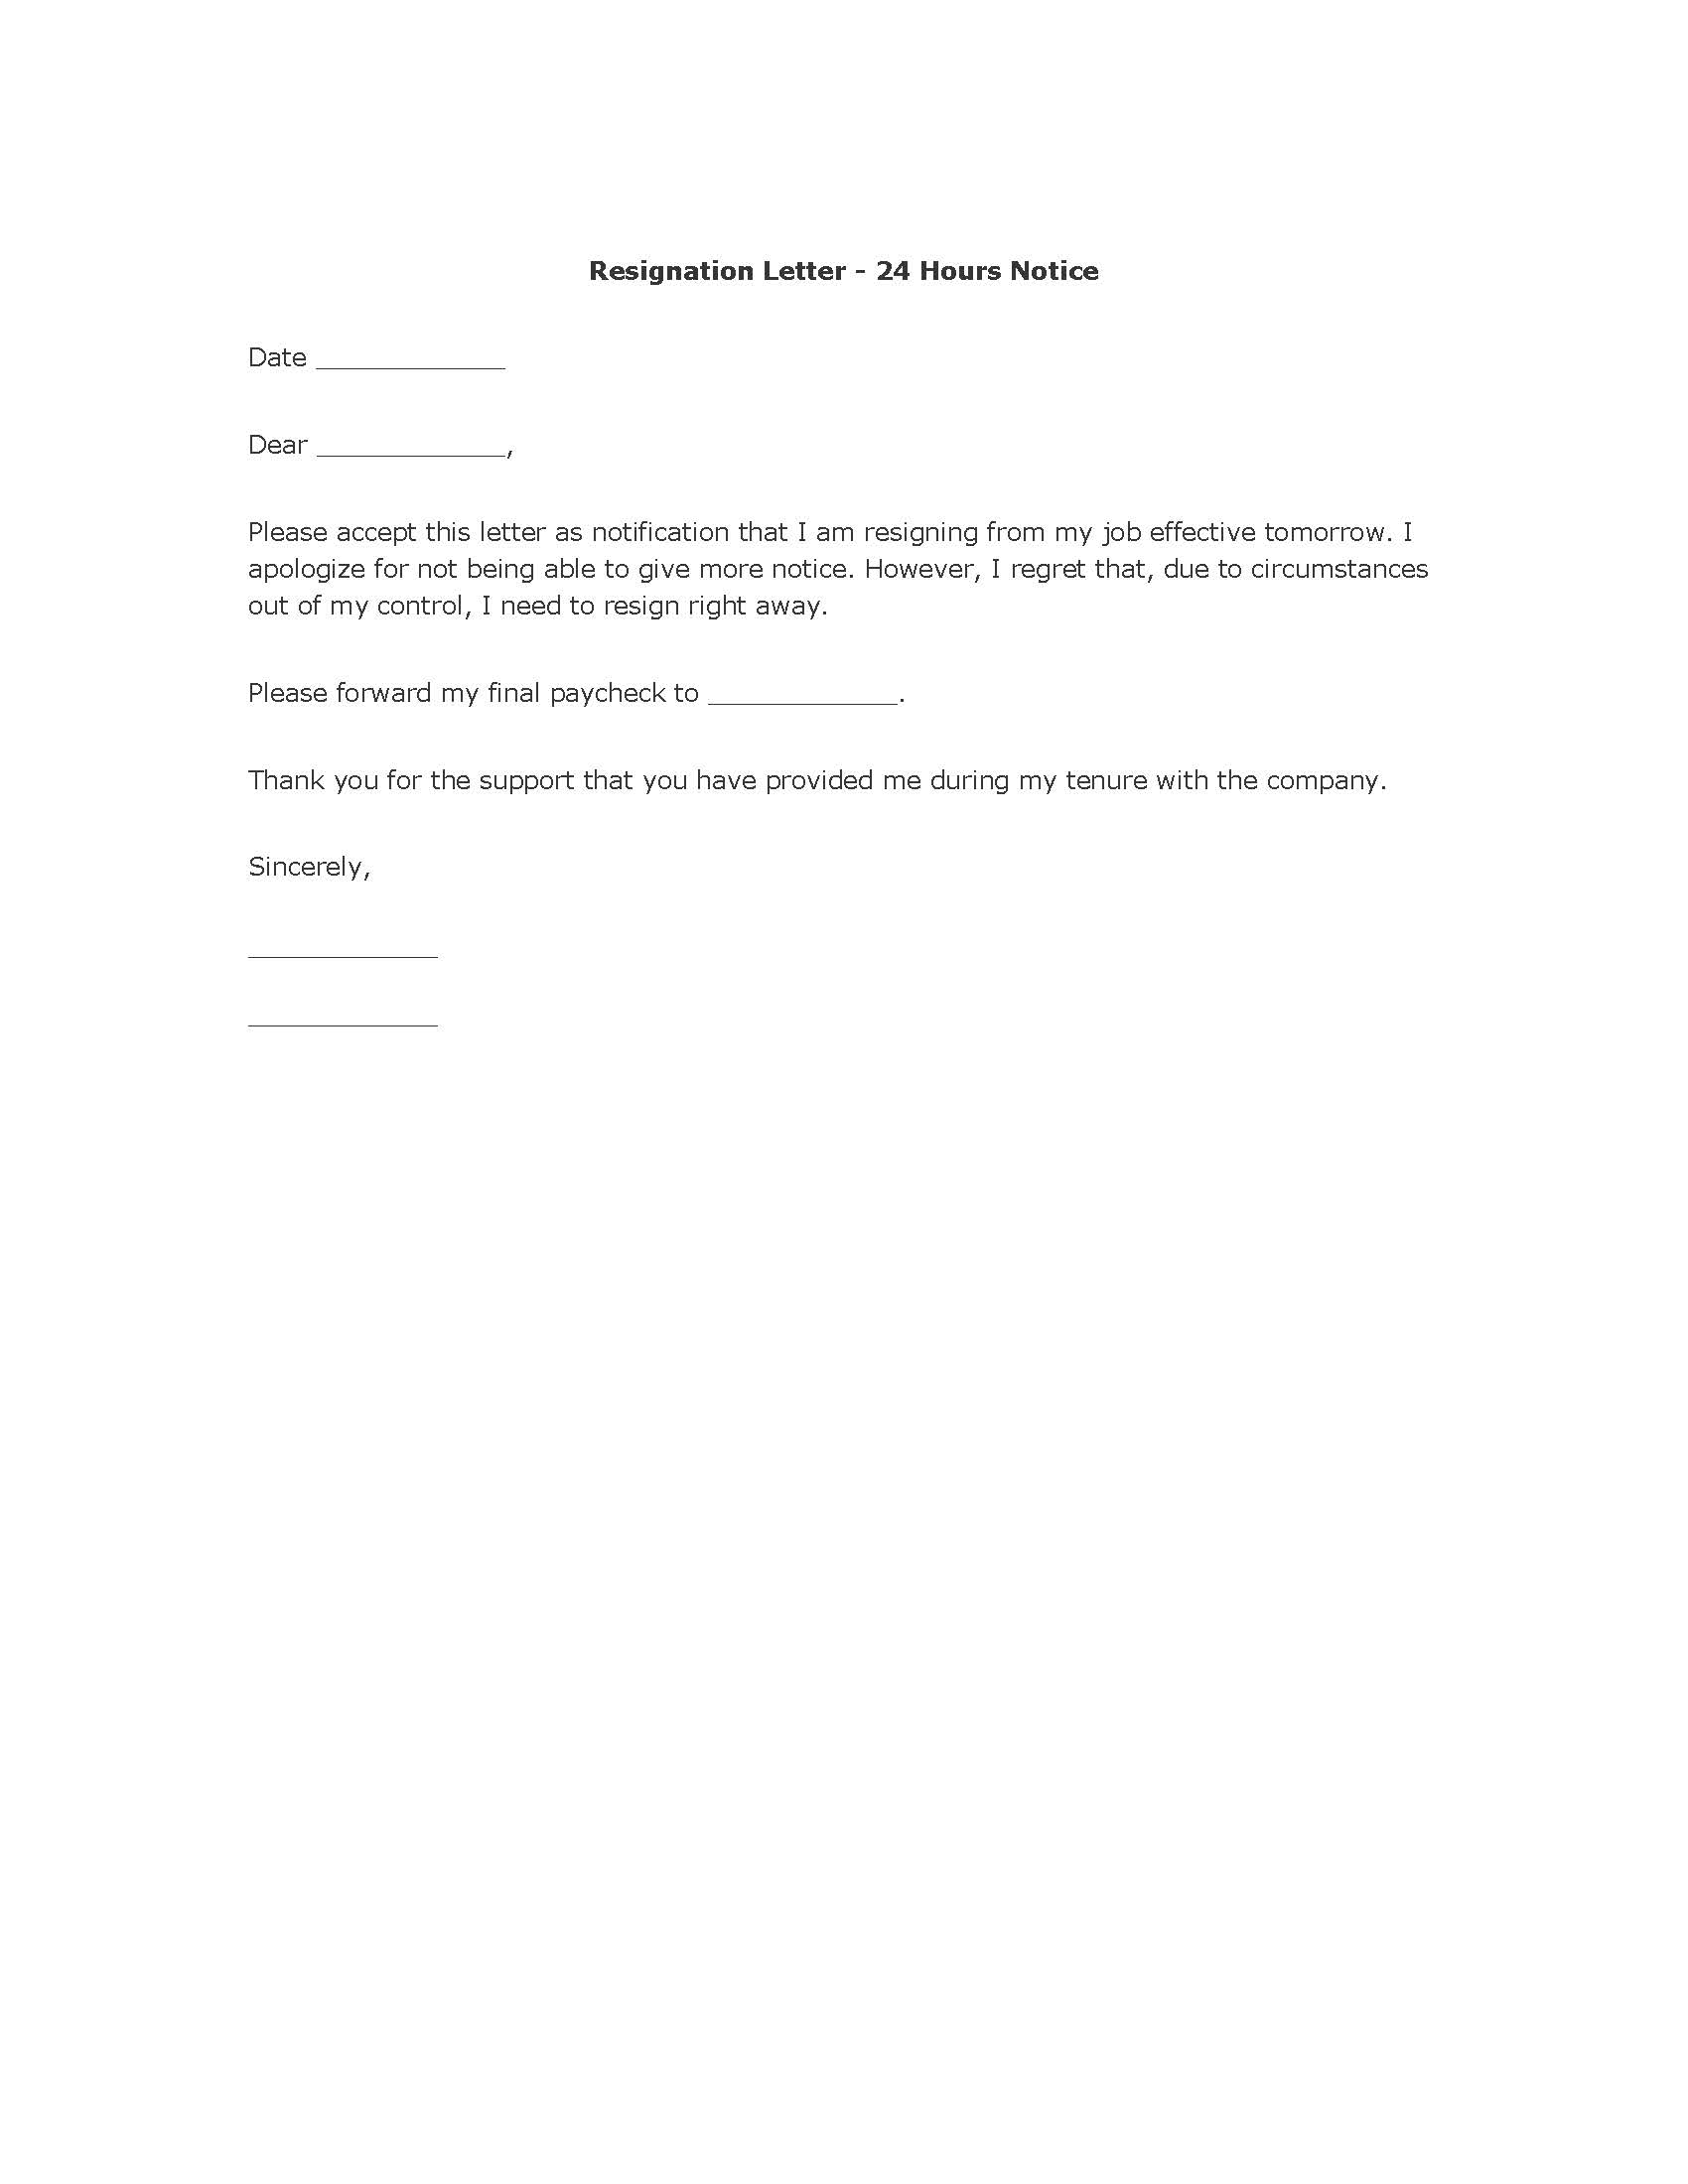 resignation letter notice 24 hour cover letter examples and samples resignation letter notice 24 hour letter of resignation example 24 hours notice letter of resignation